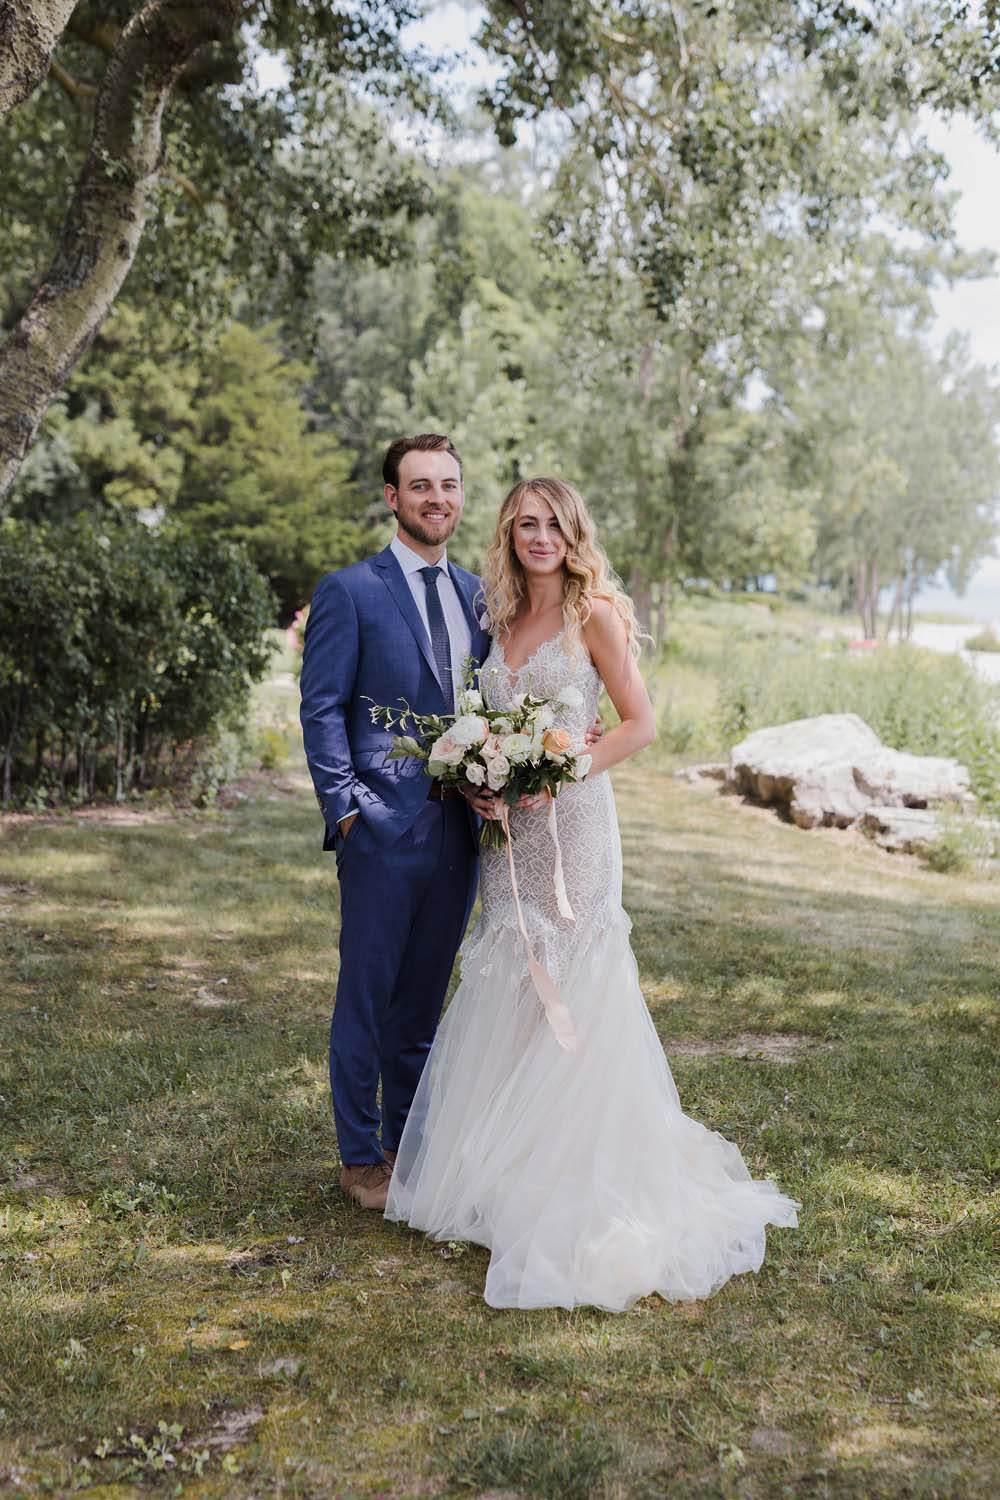 A Whimsical Wedding at Windmill Point, Ontario - Couple